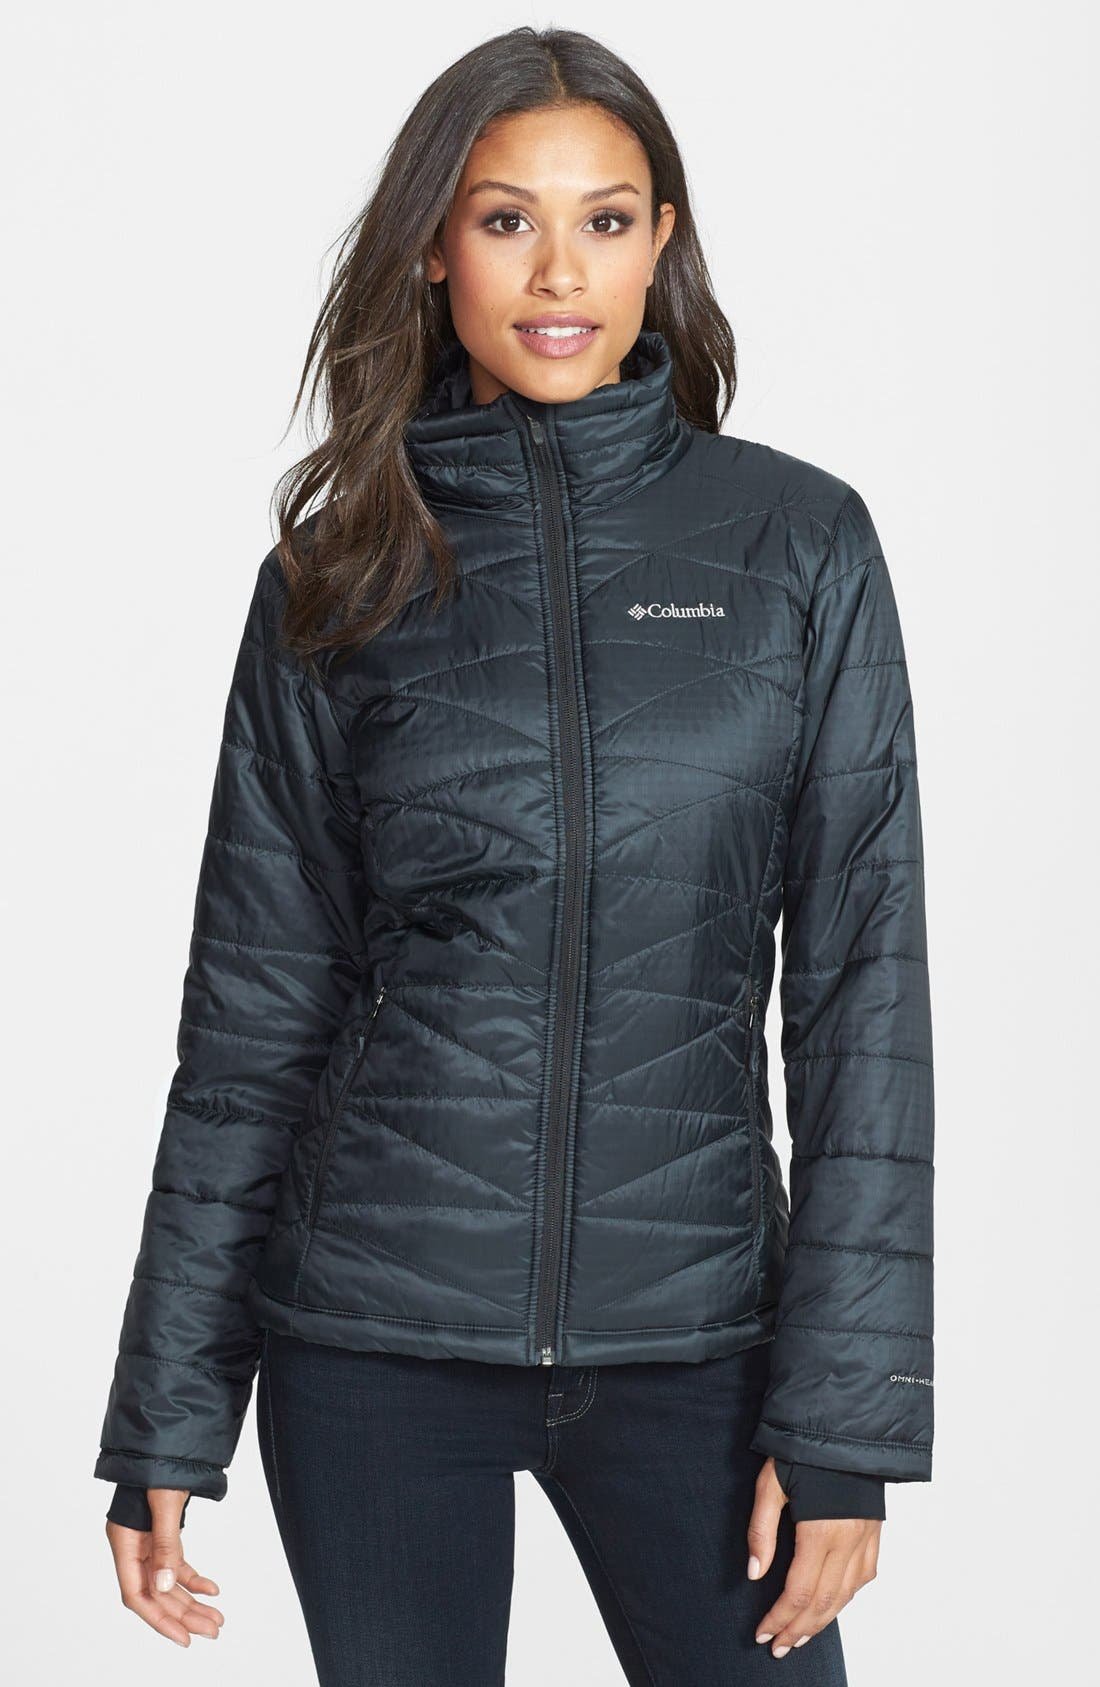 COLUMBIA 'Mighty Lite' Jacket, Main, color, 010